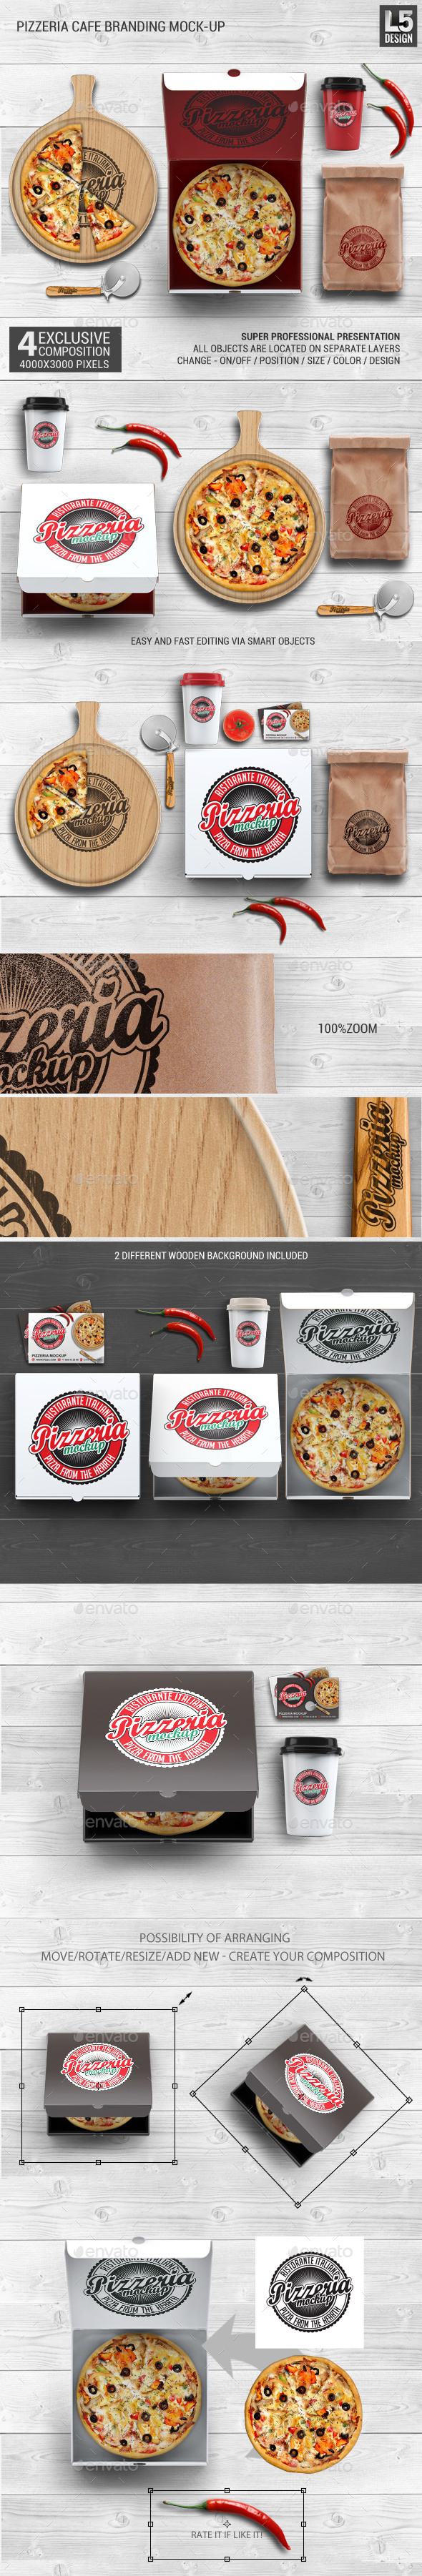 Pizzeria Branding Identity Mock-up - Food and Drink Packaging